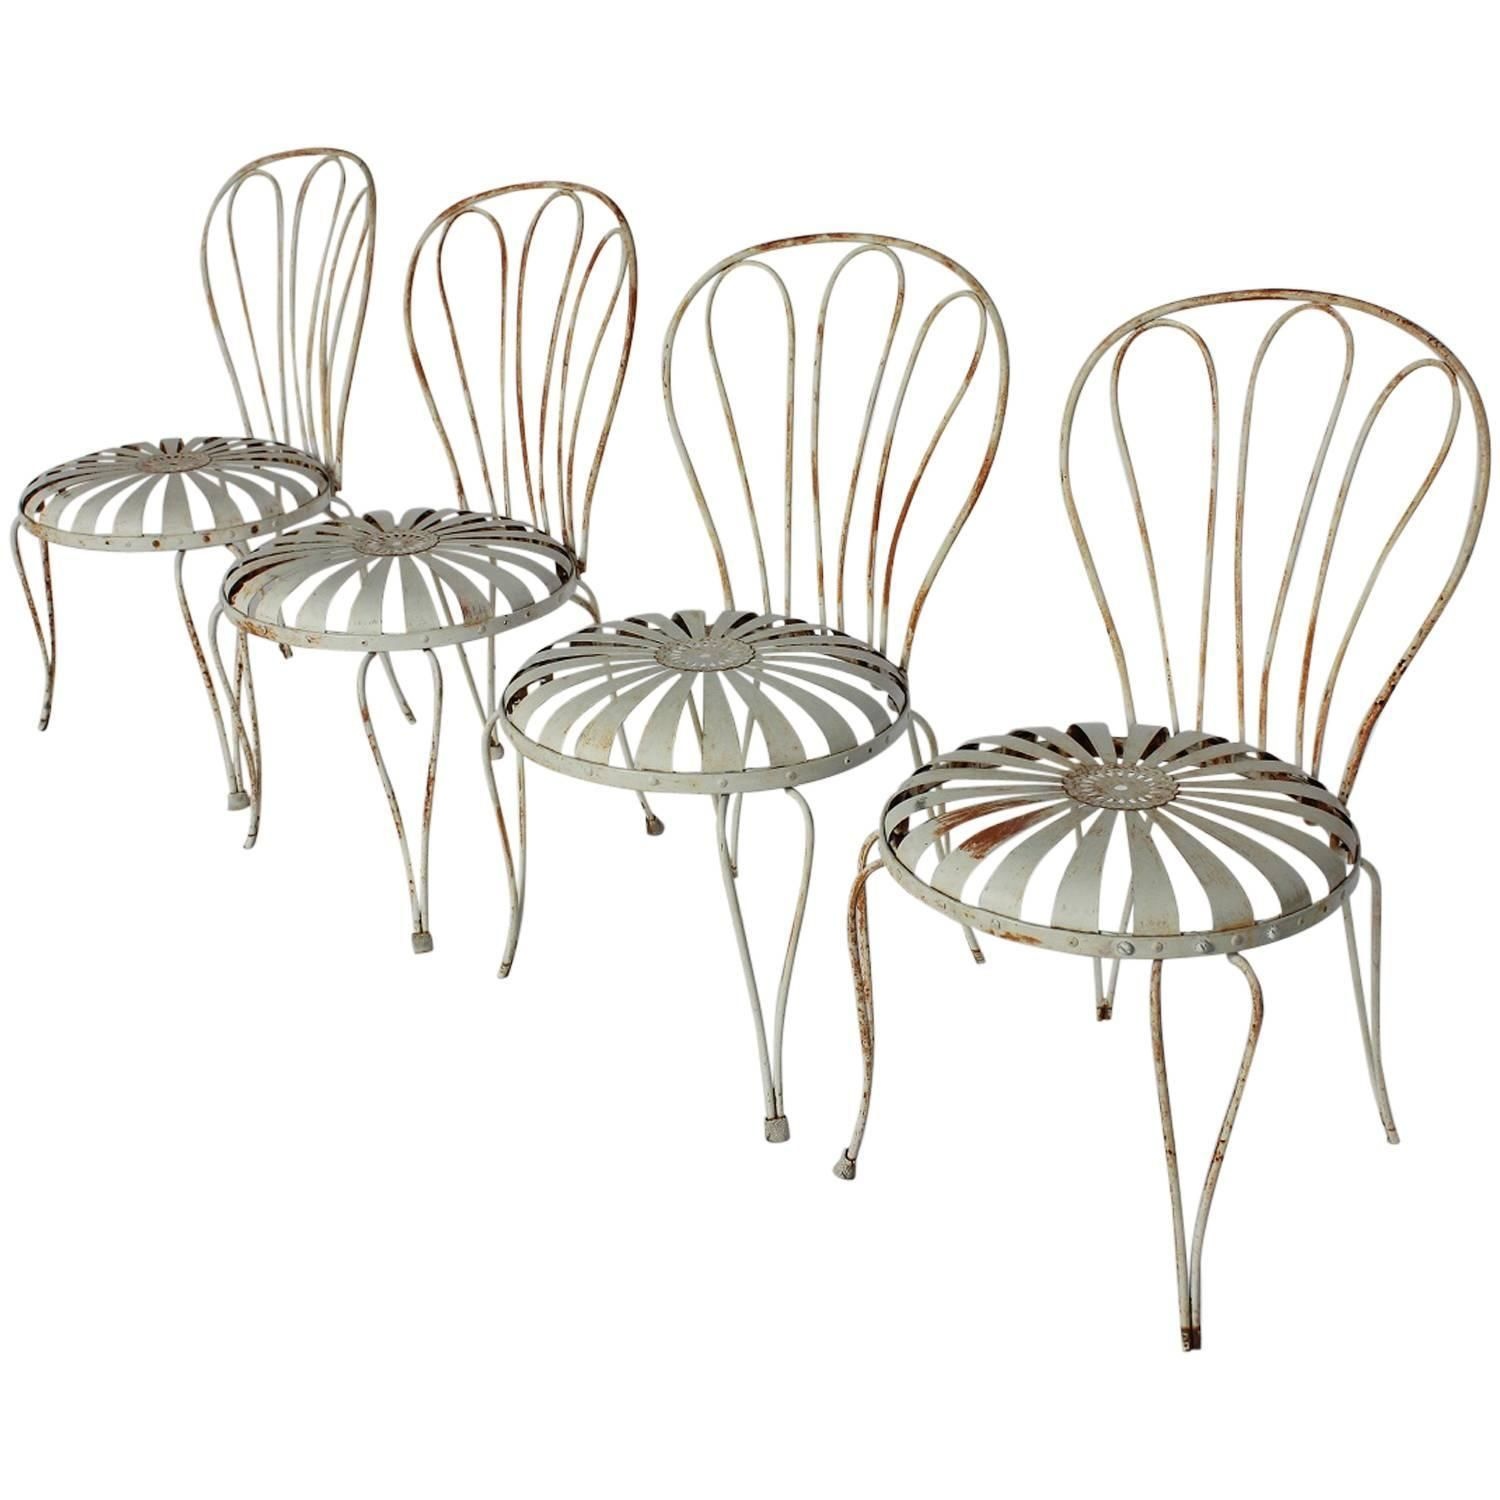 1930s French Sunburst Garden Chairs by Francois Carre | From a unique  collection of antique and modern patio and garden furniture at ... - 1930s French Sunburst Garden Chairs By Francois Carre Modern Patio